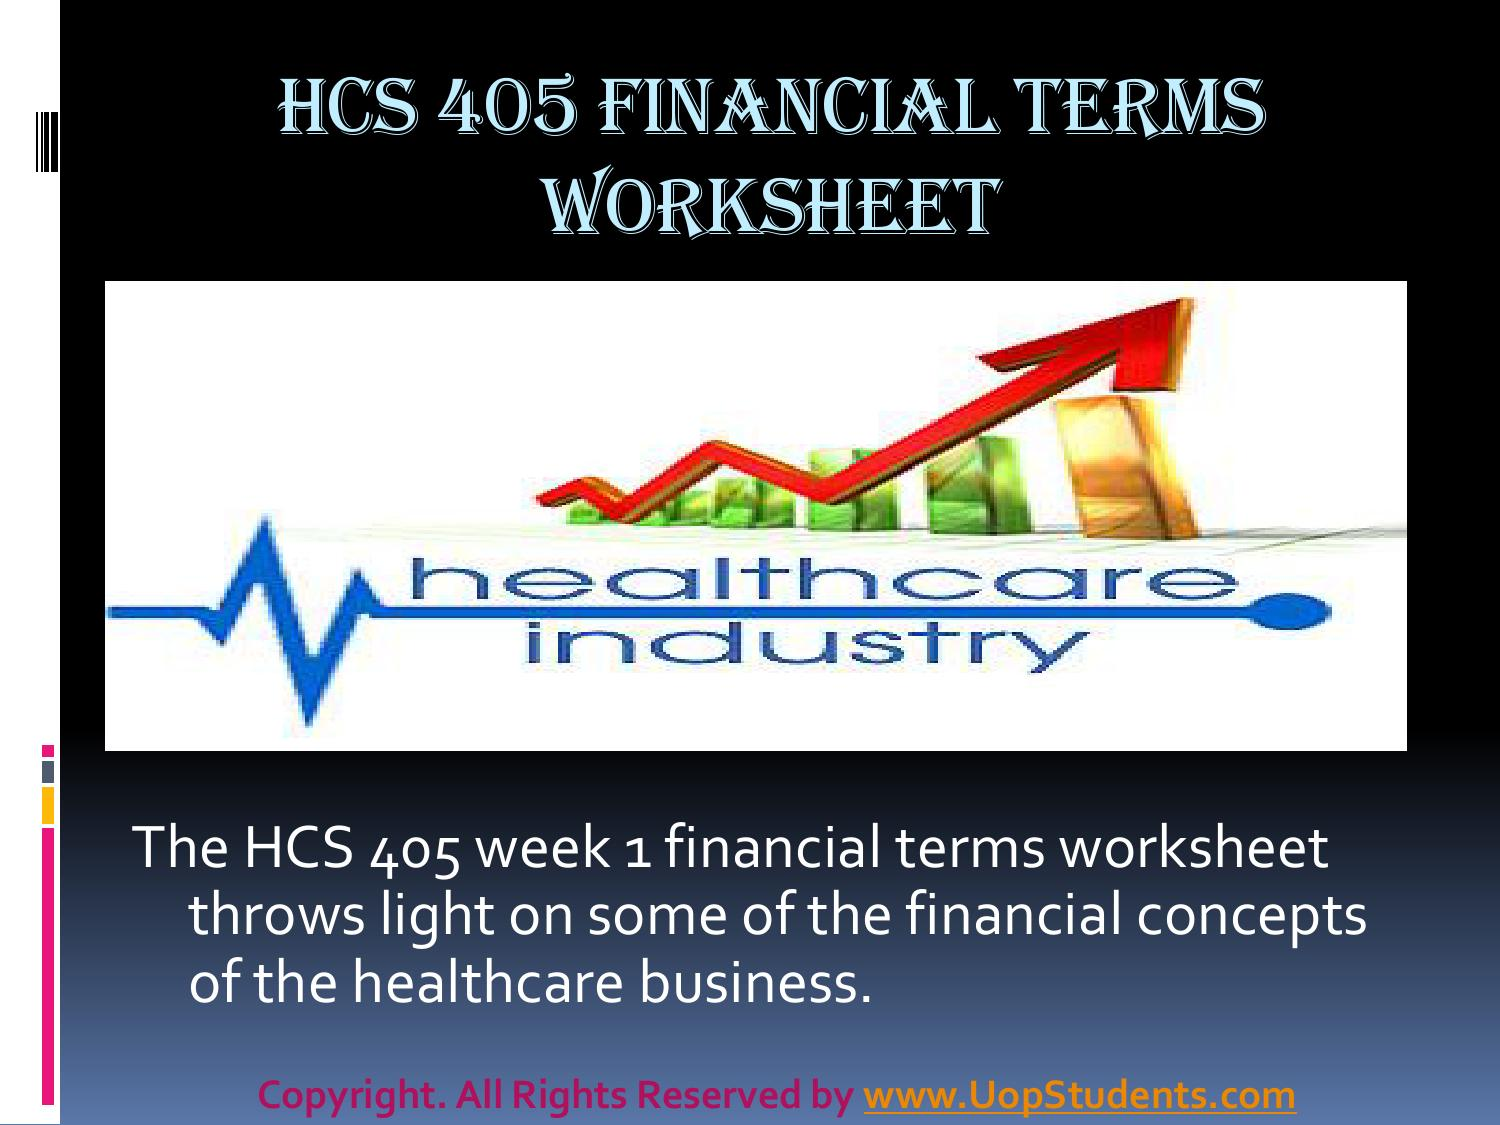 hcs 405 week 1 health care financial terms worksheet presentation by diya sharma issuu. Black Bedroom Furniture Sets. Home Design Ideas